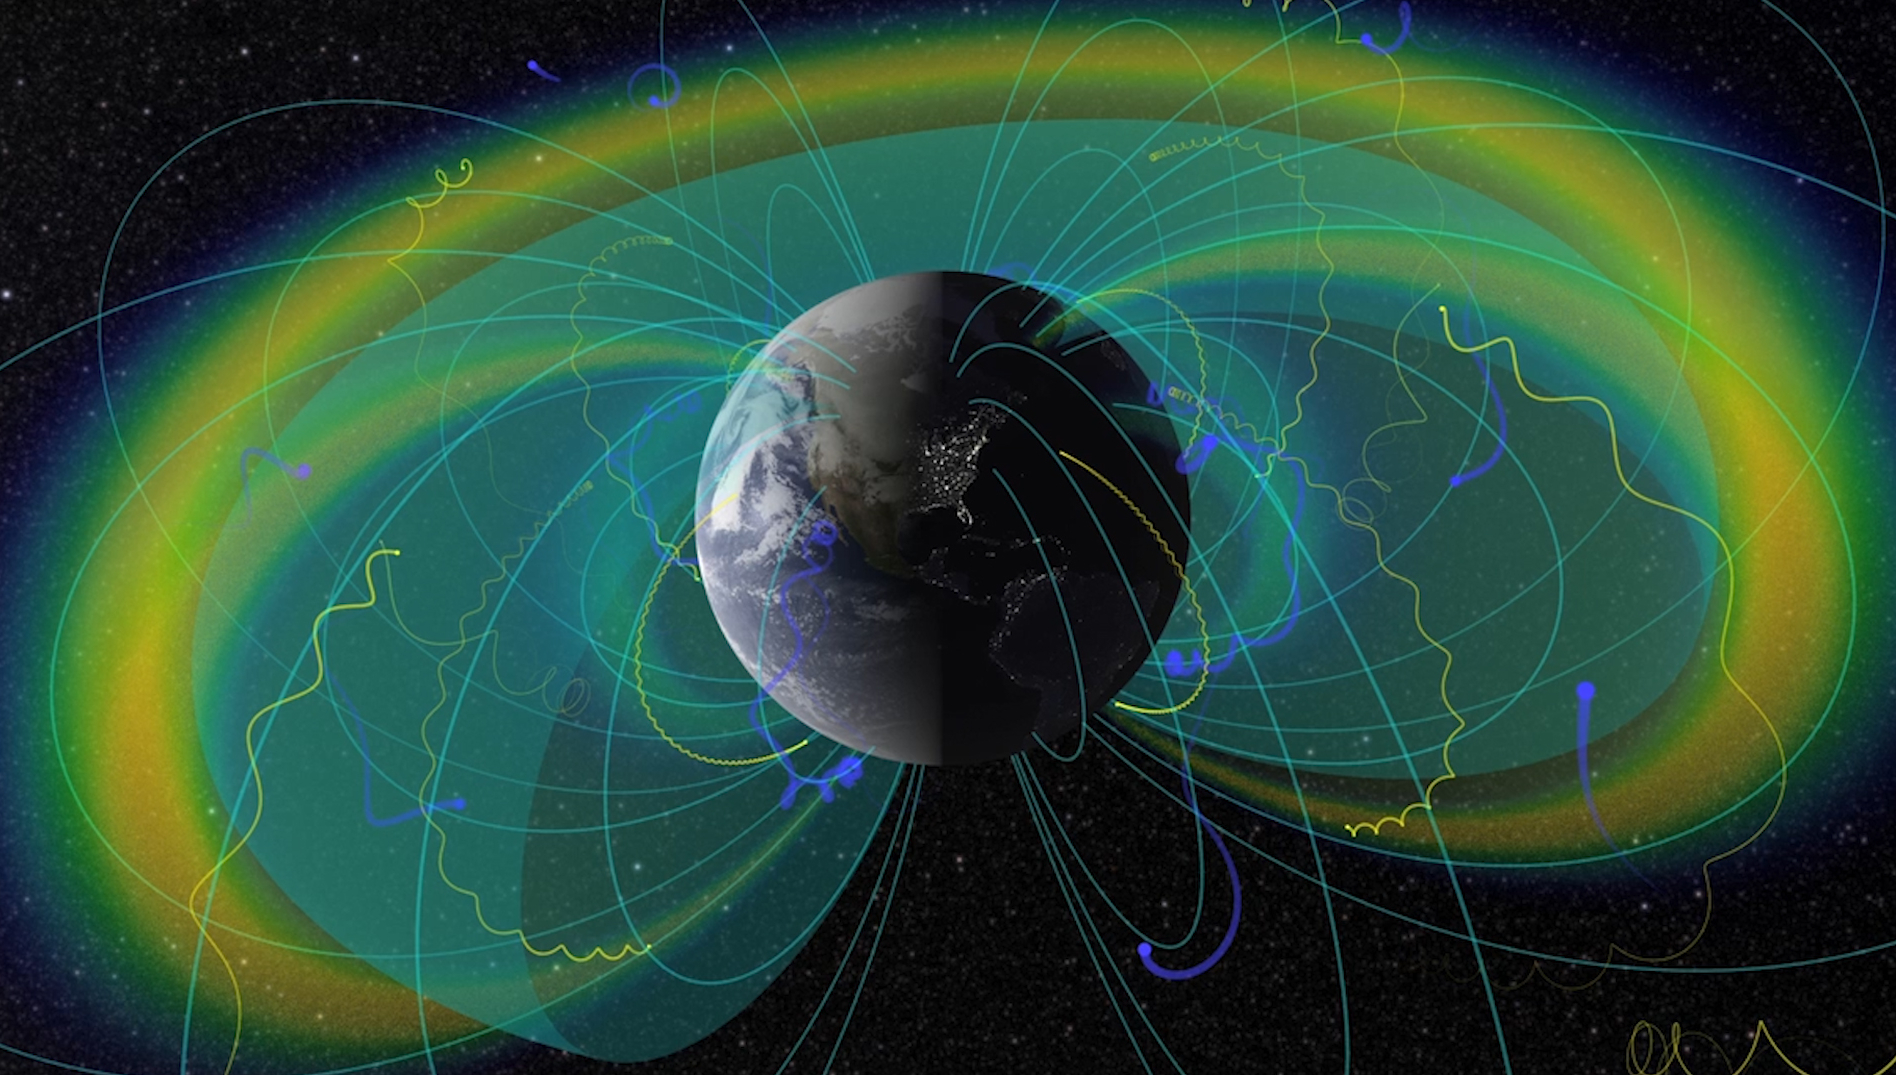 Weak Spot in Magnetic Field May Be Linked to Remains From Ancient Planet